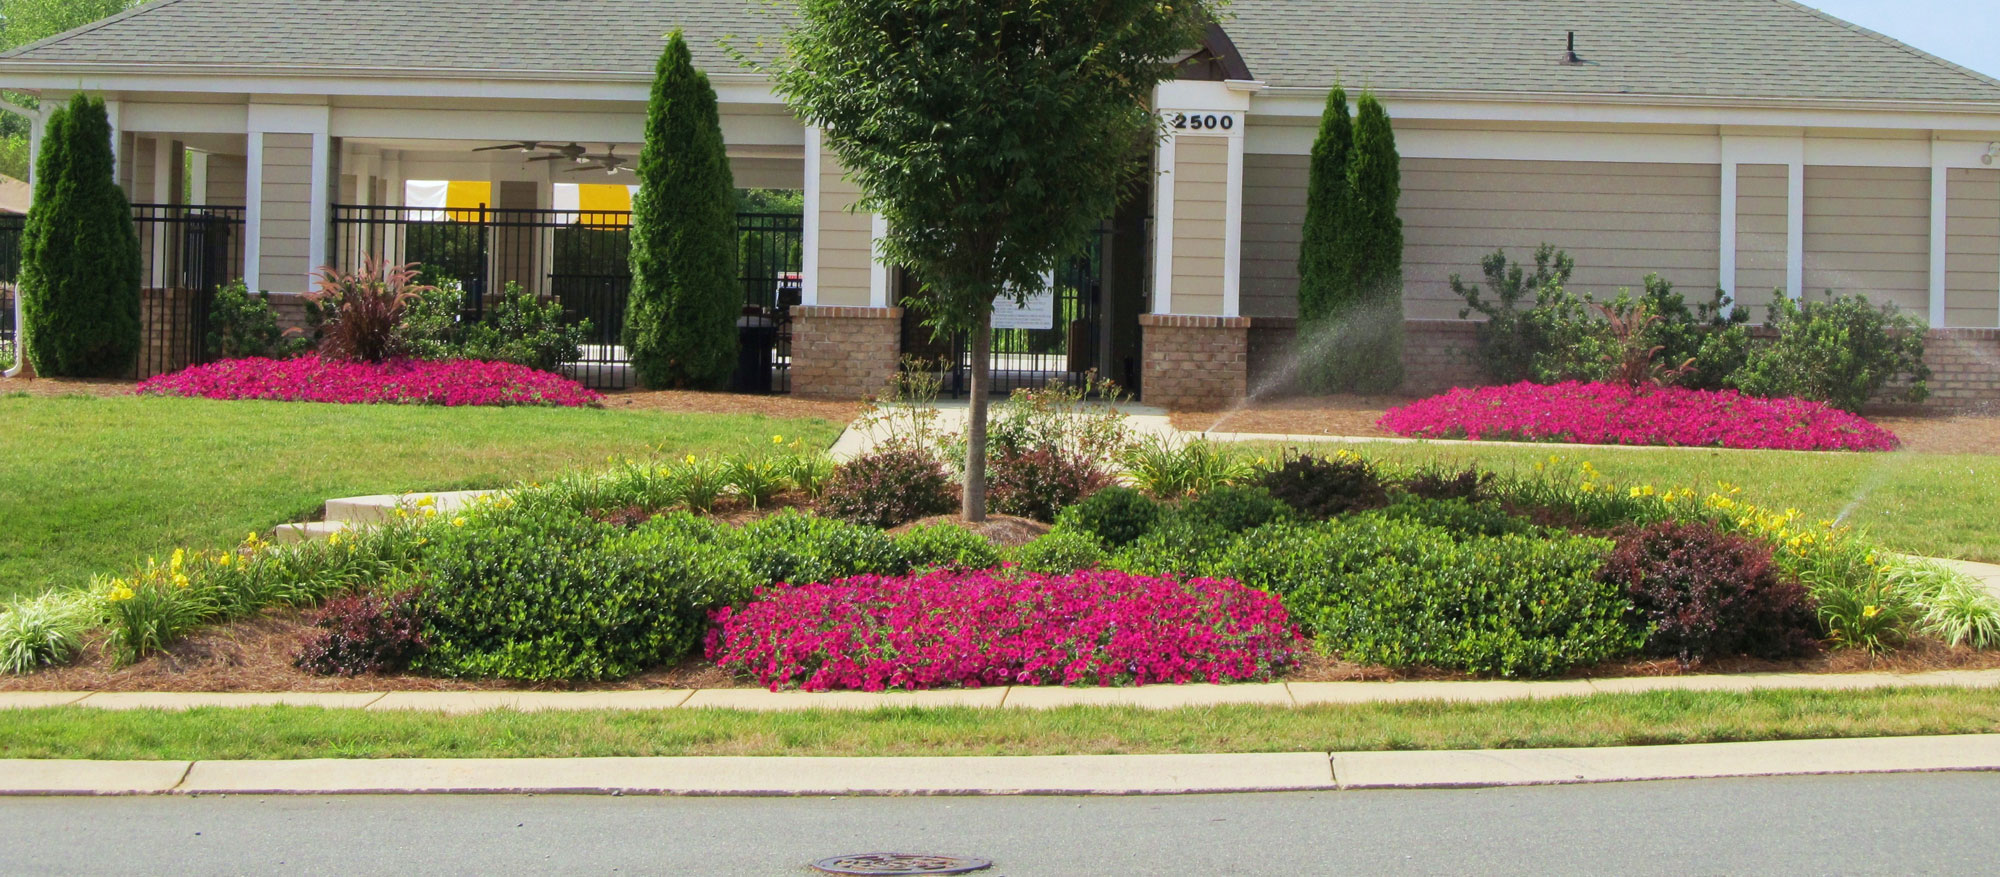 Top landscapers in charlotte nc - Top Landscapers In Charlotte Nc 34